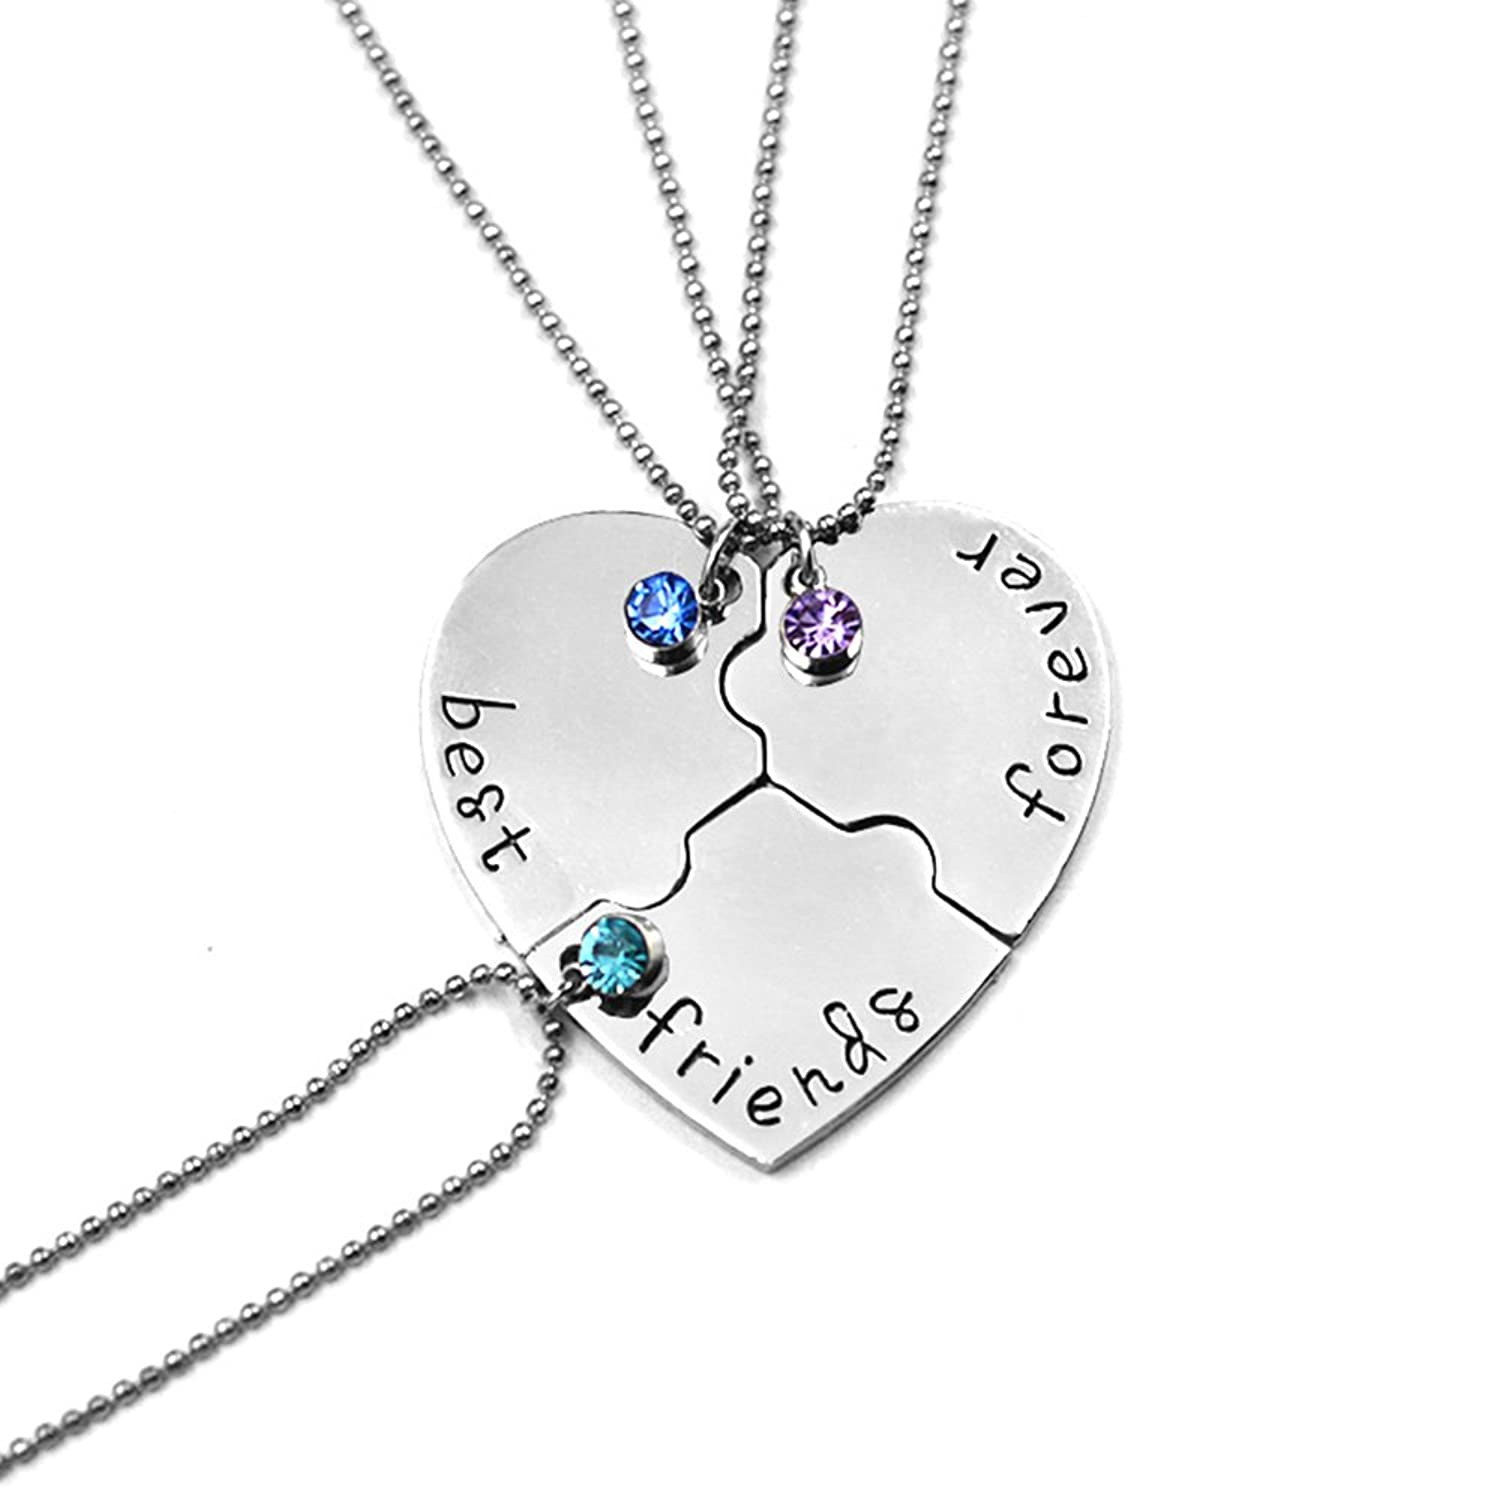 gold necklaces jigsaw amp necklace plated by sterling rose piece david puzzle silver deyong image